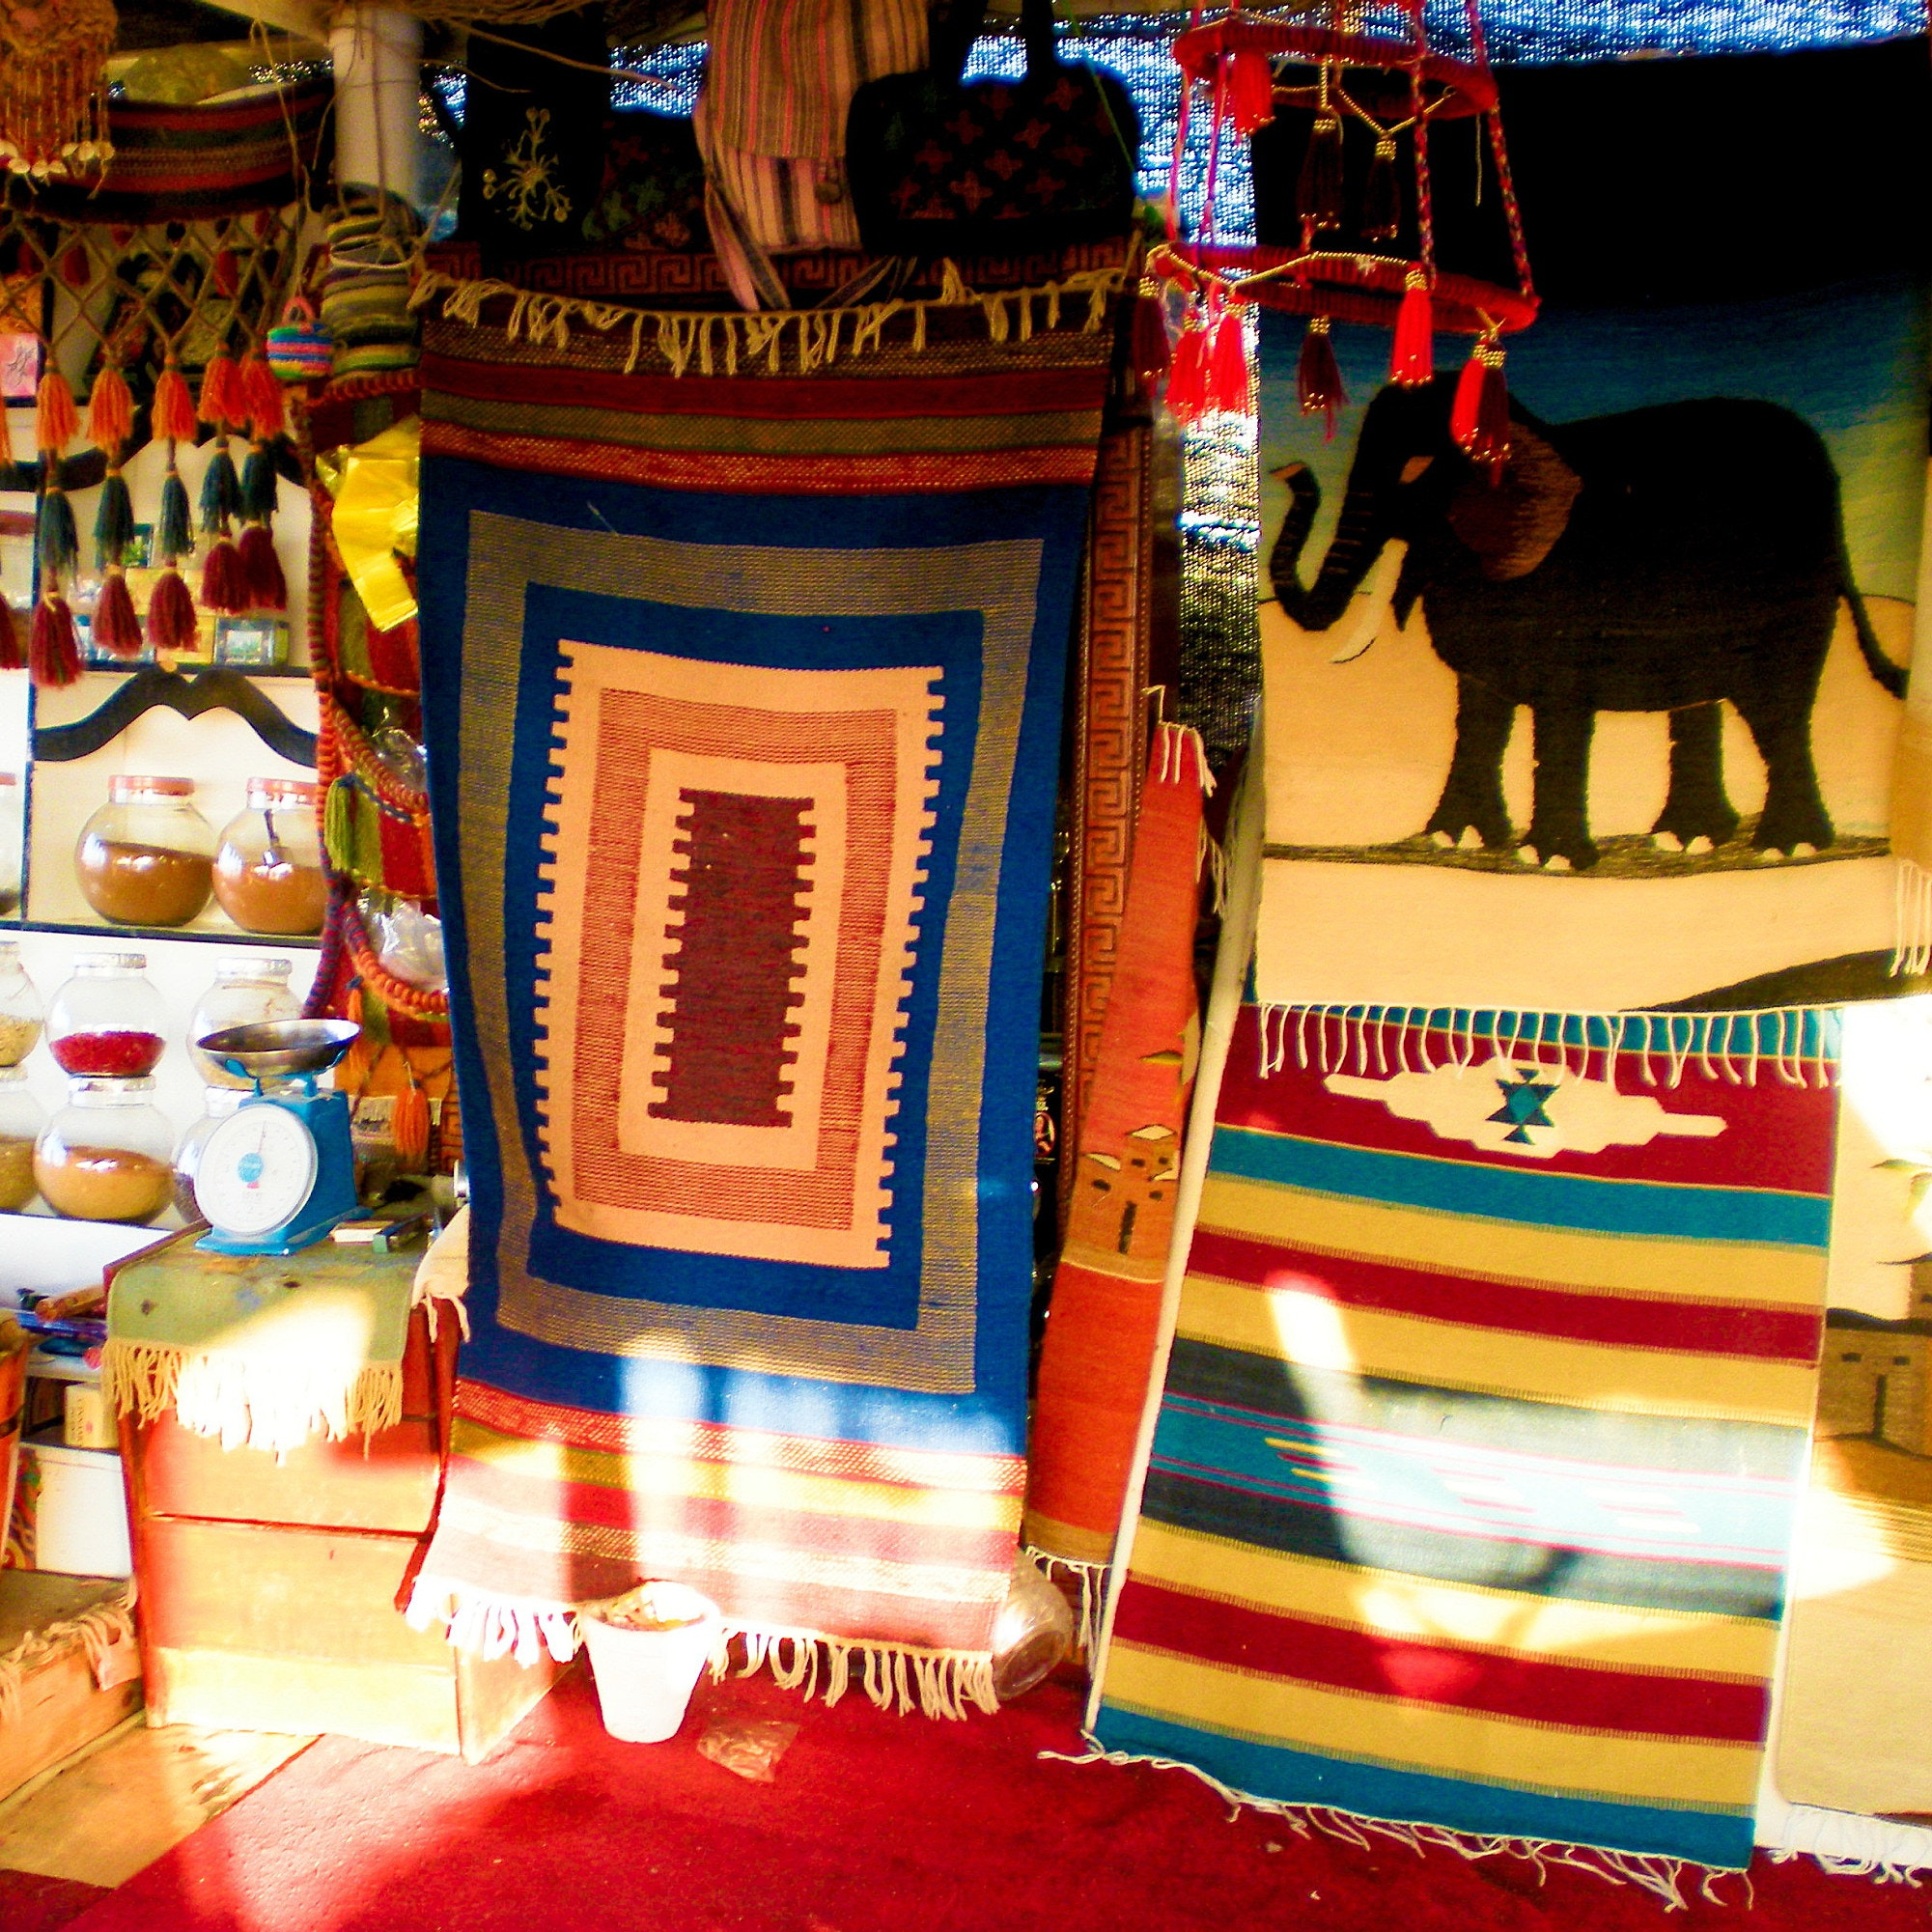 Assorted-print Tapestry Lot, Art, Business, Carpet, Close-up, HQ Photo